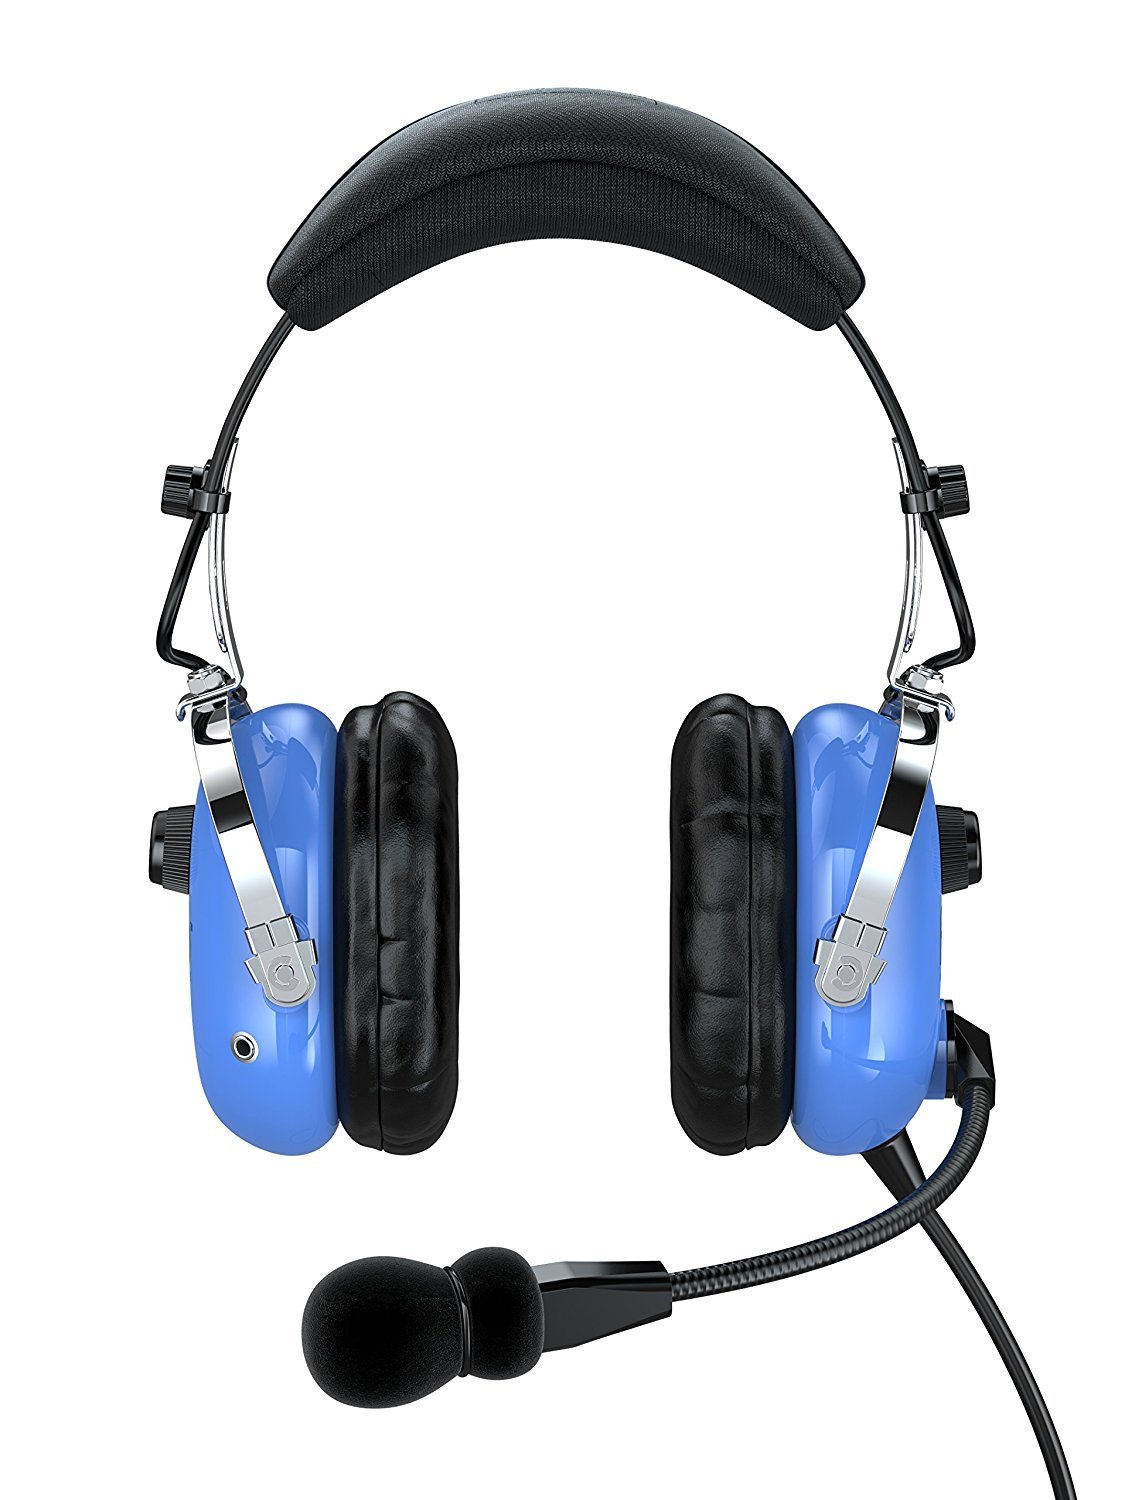 FARO G2 ANR (Active Noise Reduction) Premium Pilot Aviation Headset with Mp3 Input (Available adapters for aviation headset connectors, helicopter adapter, universal pilot headset, standard dual GA adapter universal support) - Blue